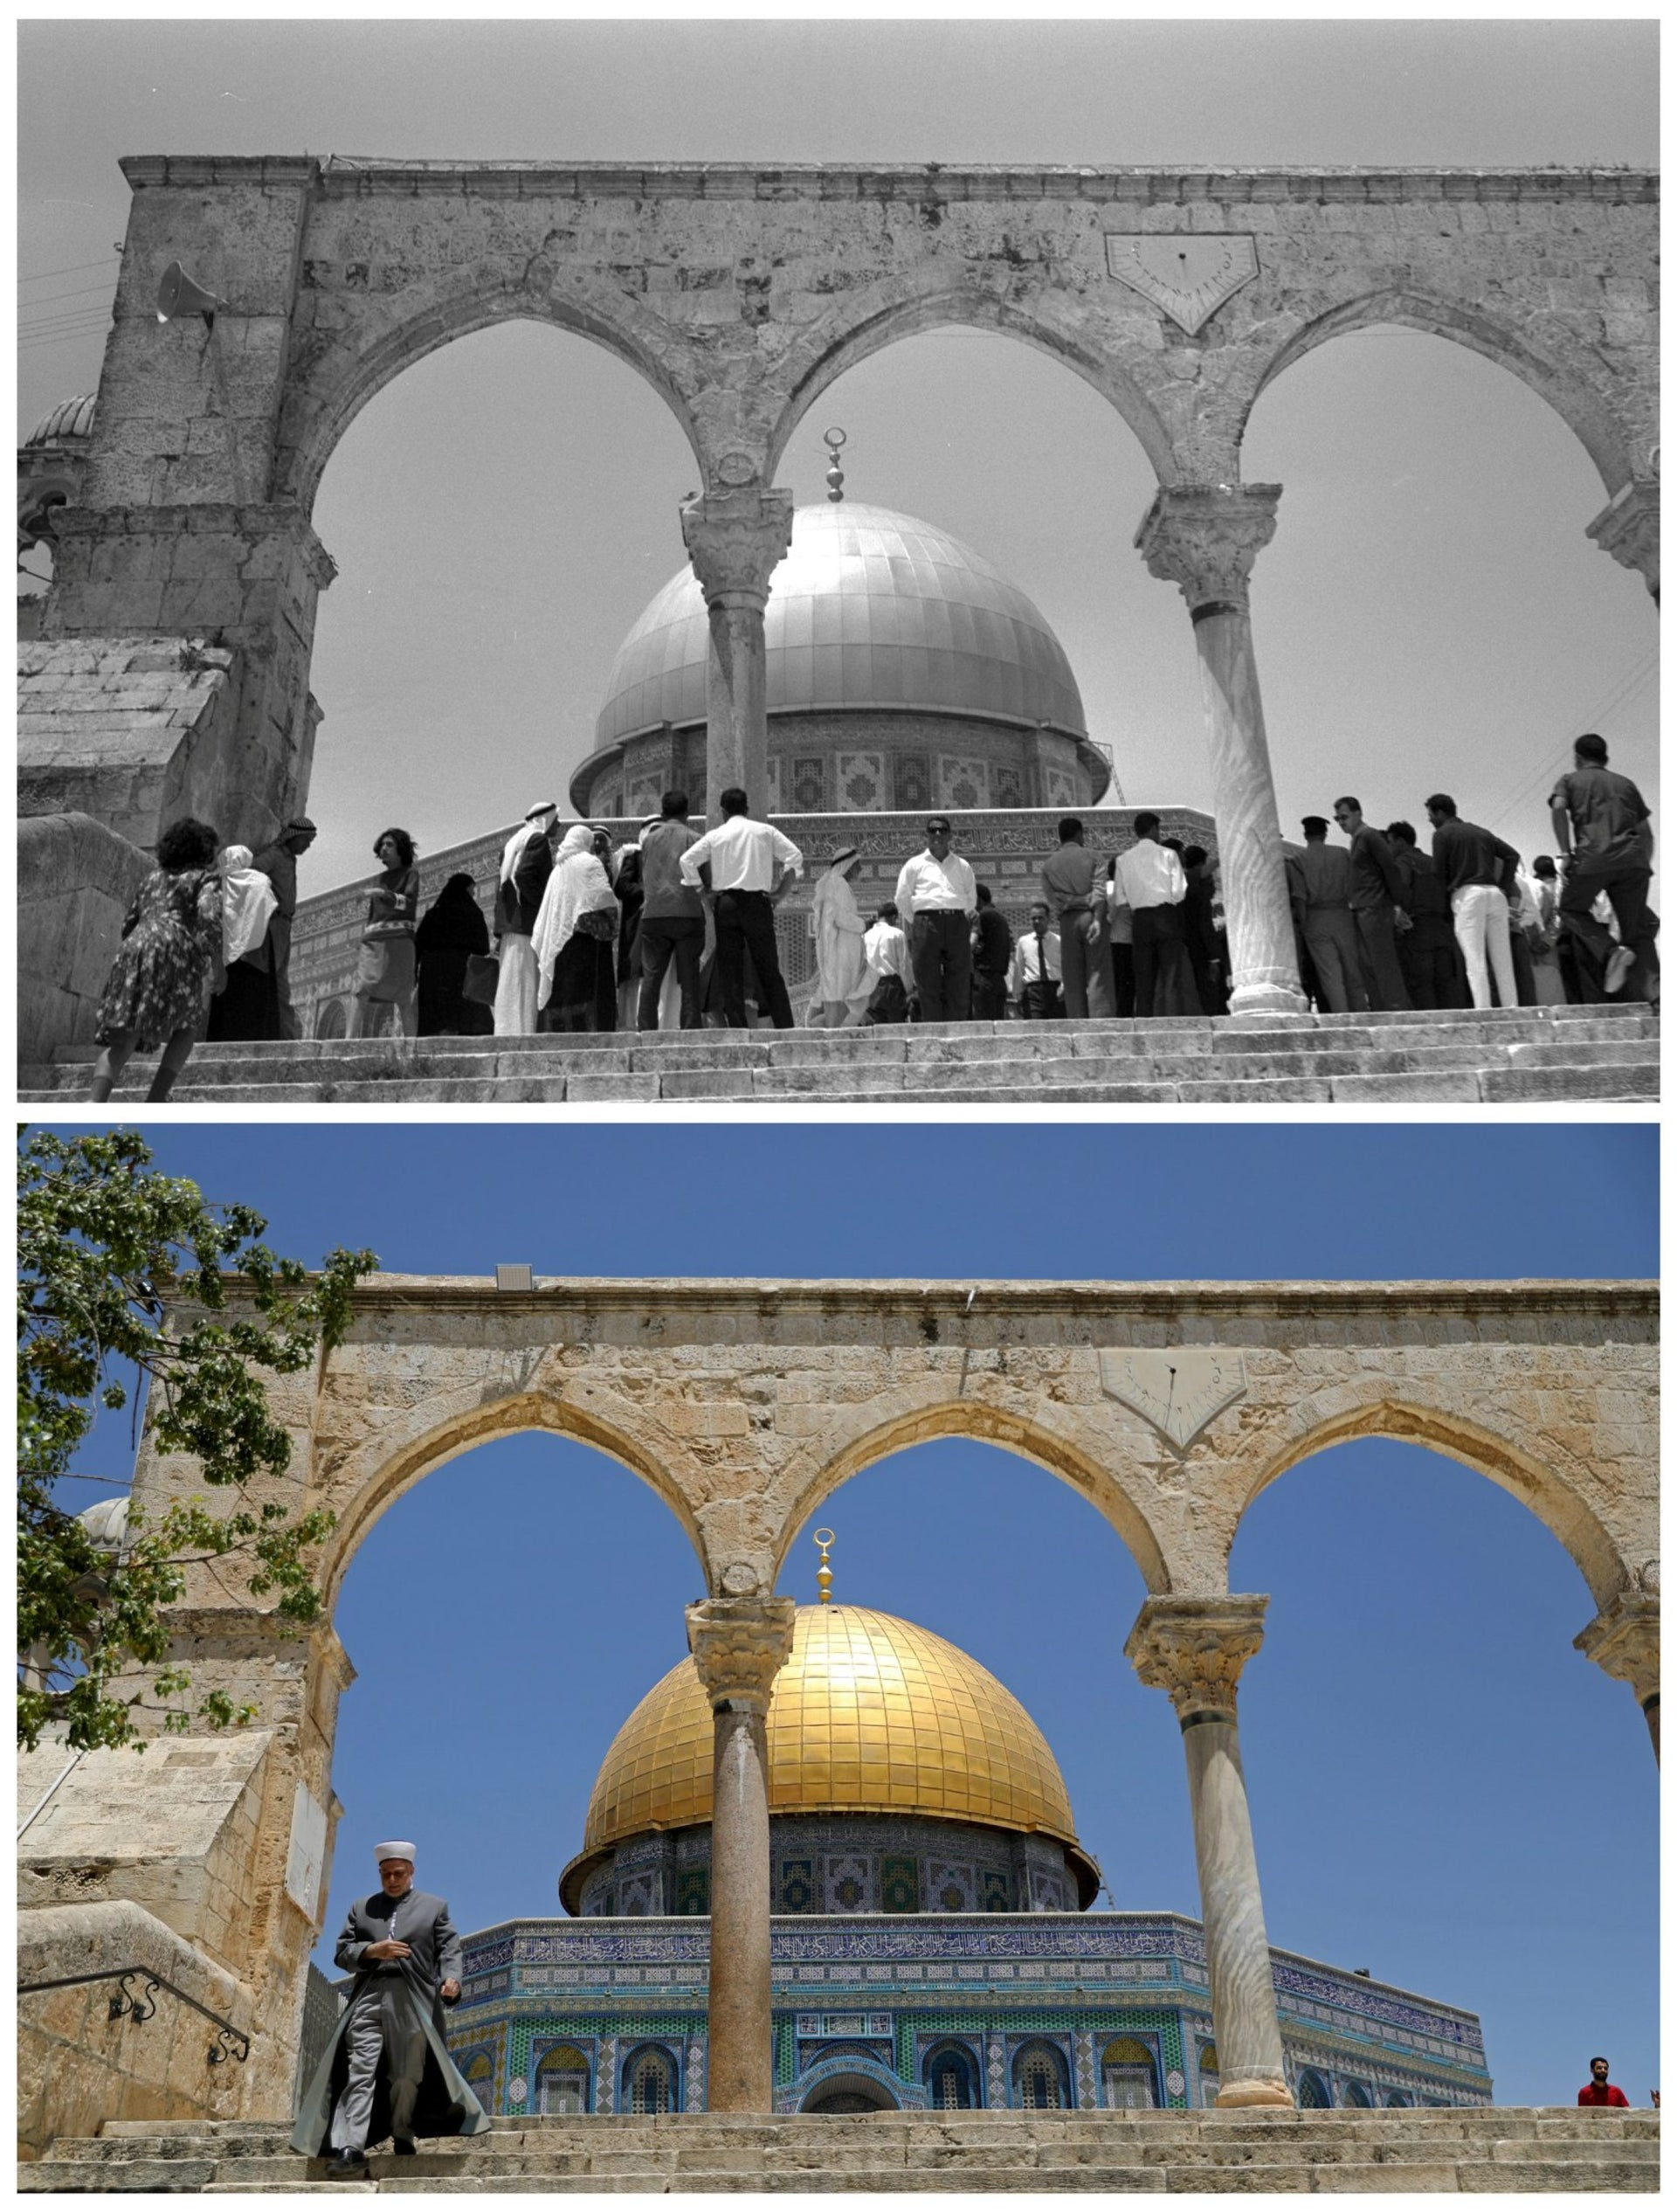 "A combination picture shows Palestinians standing in front of the Dome of the Rock on the compound known to Muslims as Noble Sanctuary and to Jews as Temple Mount, in Jerusalem's Old City, in this Government Press Office handout photo, taken June 23, 1967 (top) and the same location May 17, 2017. REUTERS/Moshe Pridan/Government Press Office/Handout via Reuters (top)/Ammar Awad THIS PICTURE WAS PROVIDED BY A THIRD PARTY. REUTERS IS UNABLE TO INDEPENDENTLY VERIFY THE AUTHENTICITY, CONTENT, LOCATION OR DATE OF THIS IMAGE. FOR EDITORIAL USE ONLY. NOT FOR SALE FOR MARKETING OR ADVERTISING CAMPAIGNS. SEARCH ""1967 WAR"" FOR THIS STORY. SEARCH ""WIDER IMAGE"" FOR ALL STORIES."